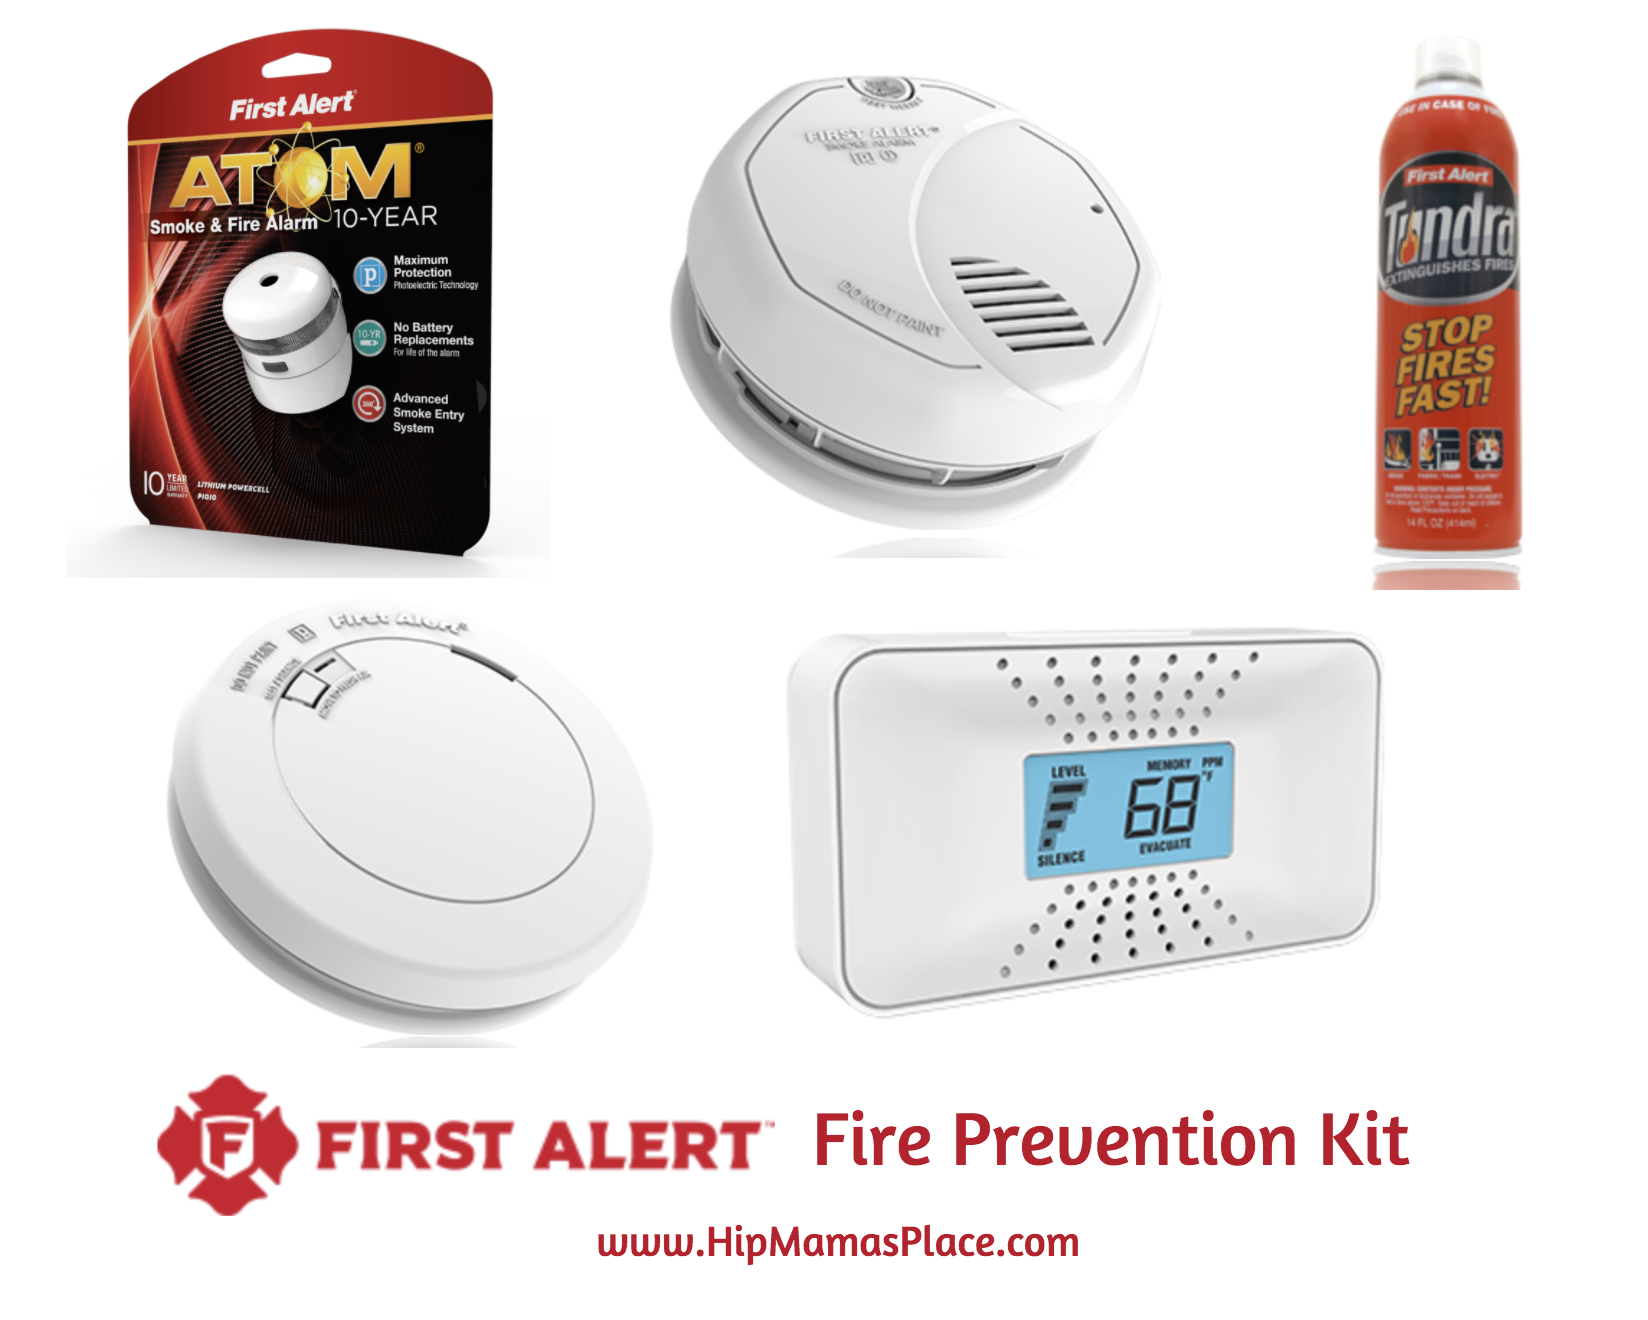 Enter to win a First Alert Fire Prevention Kit worth $220!